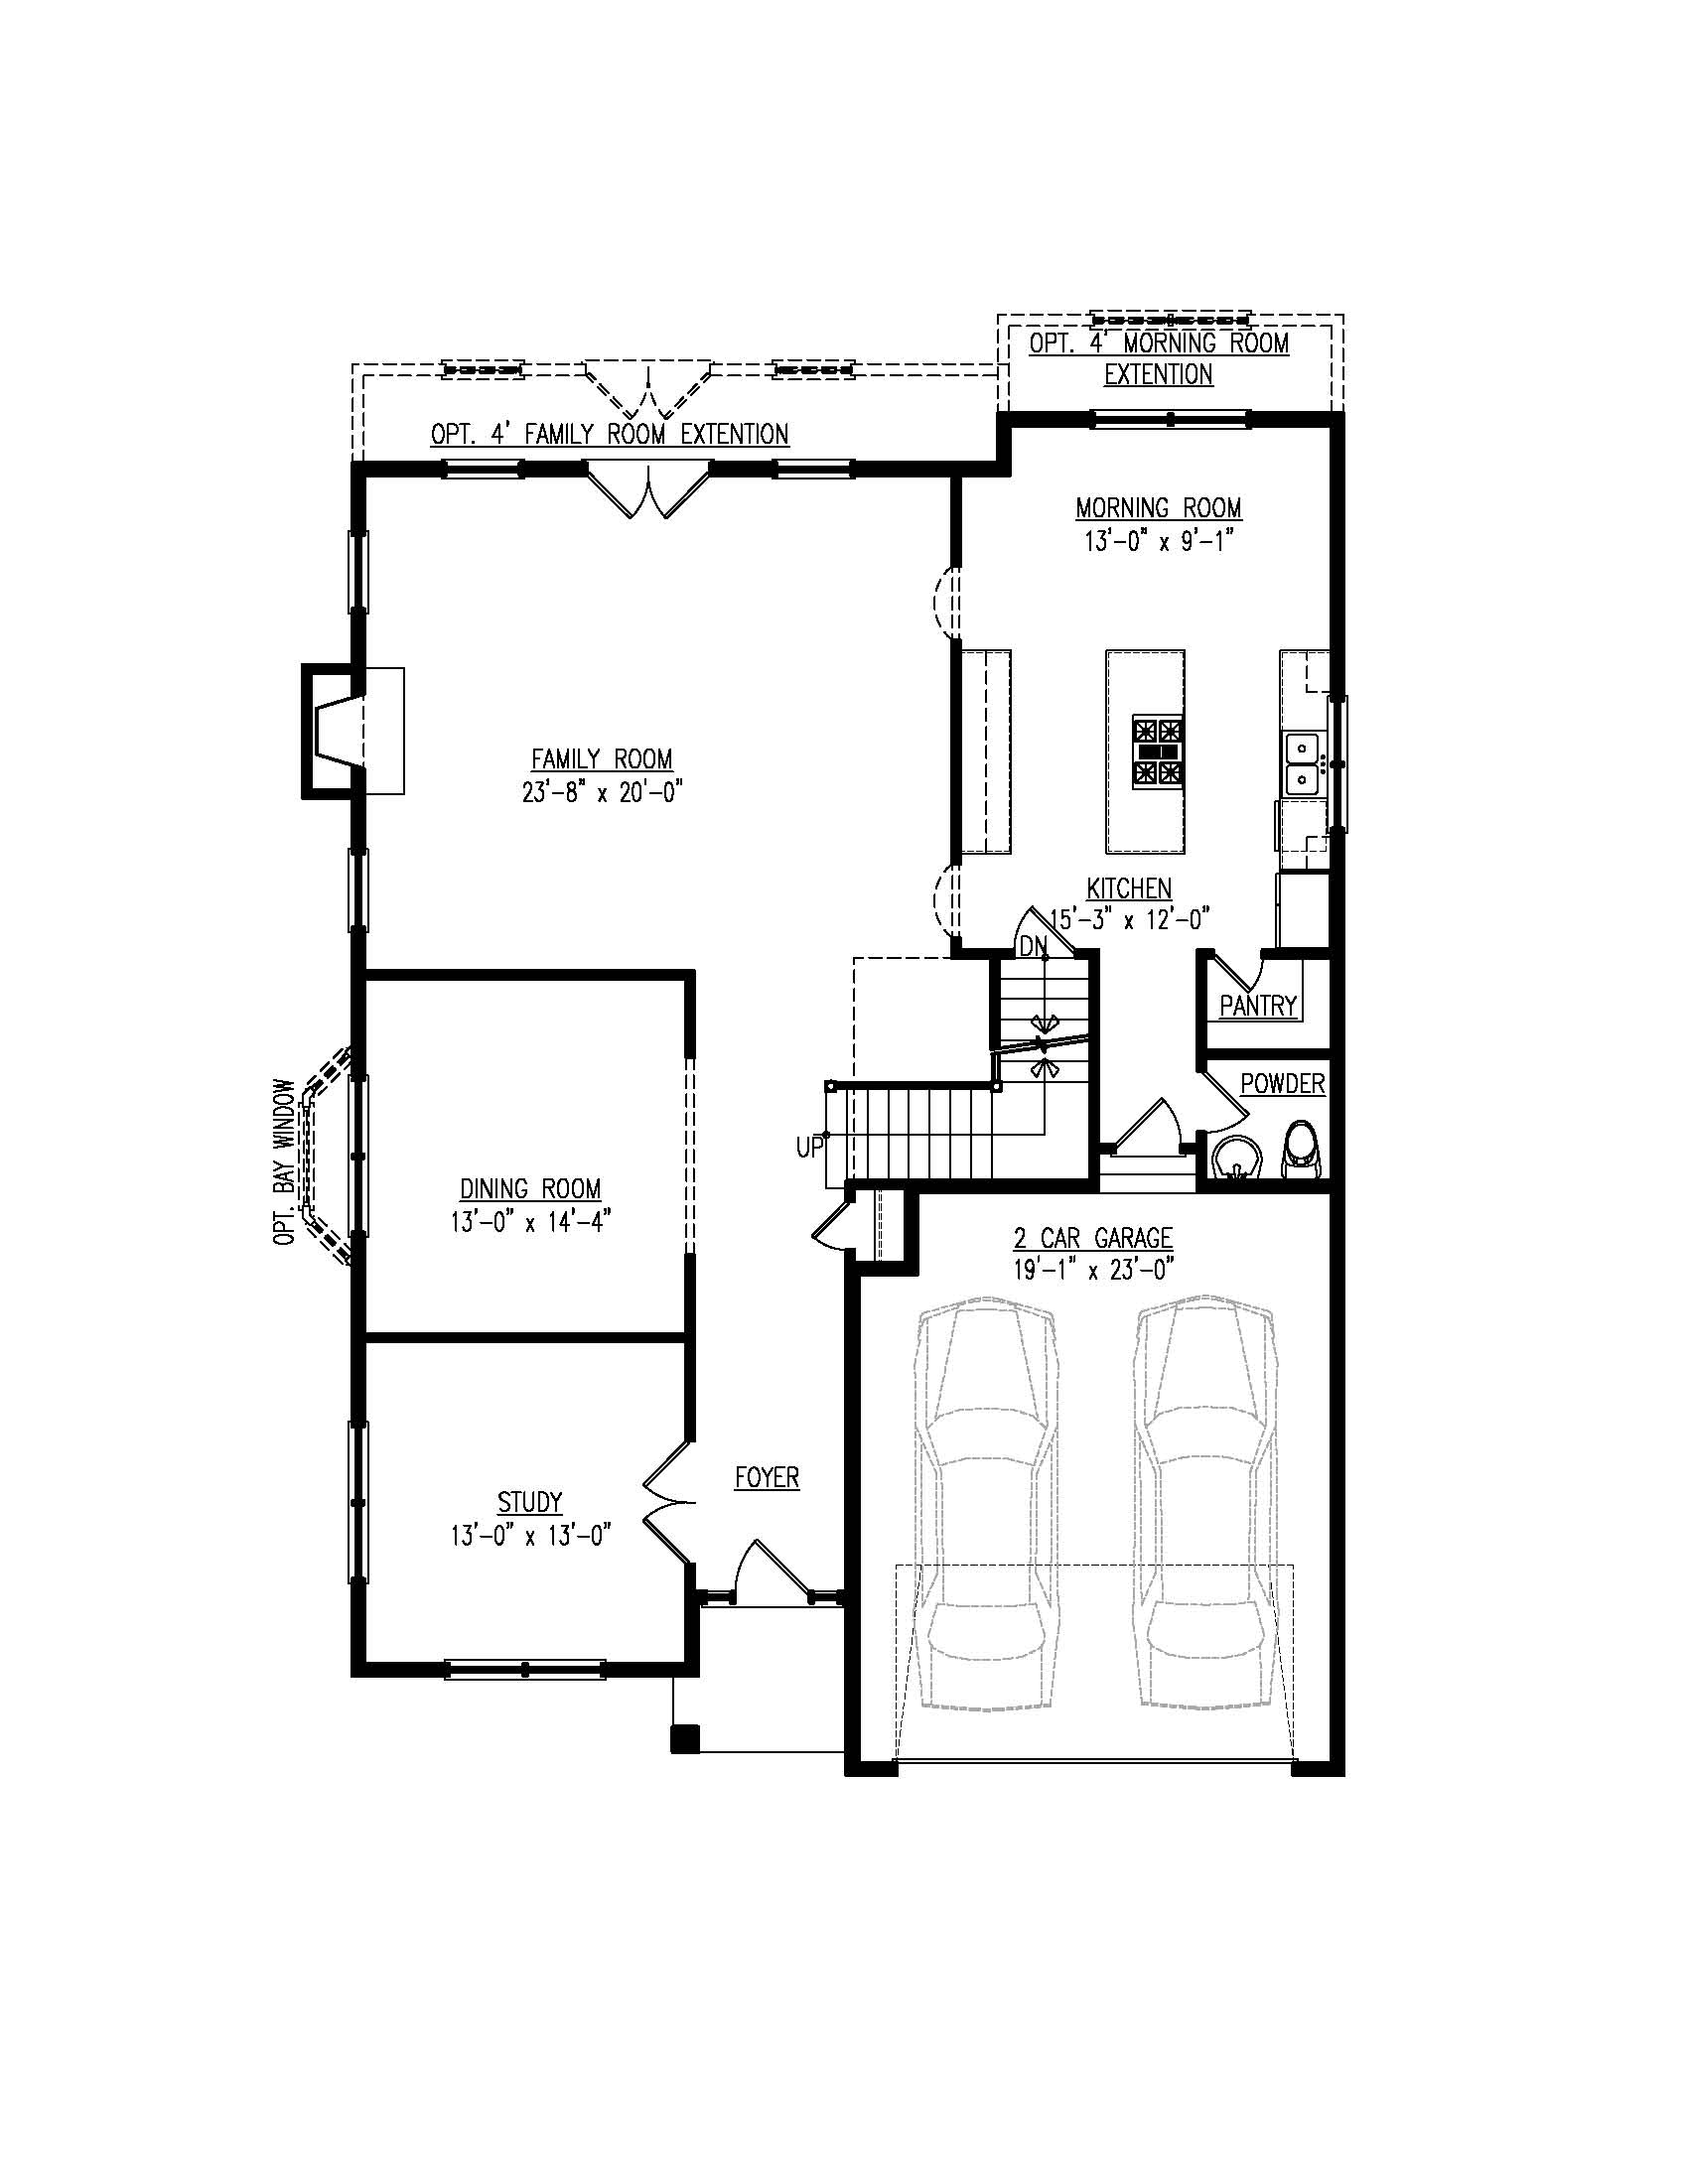 The first floor plan for the Beech Tree model home.